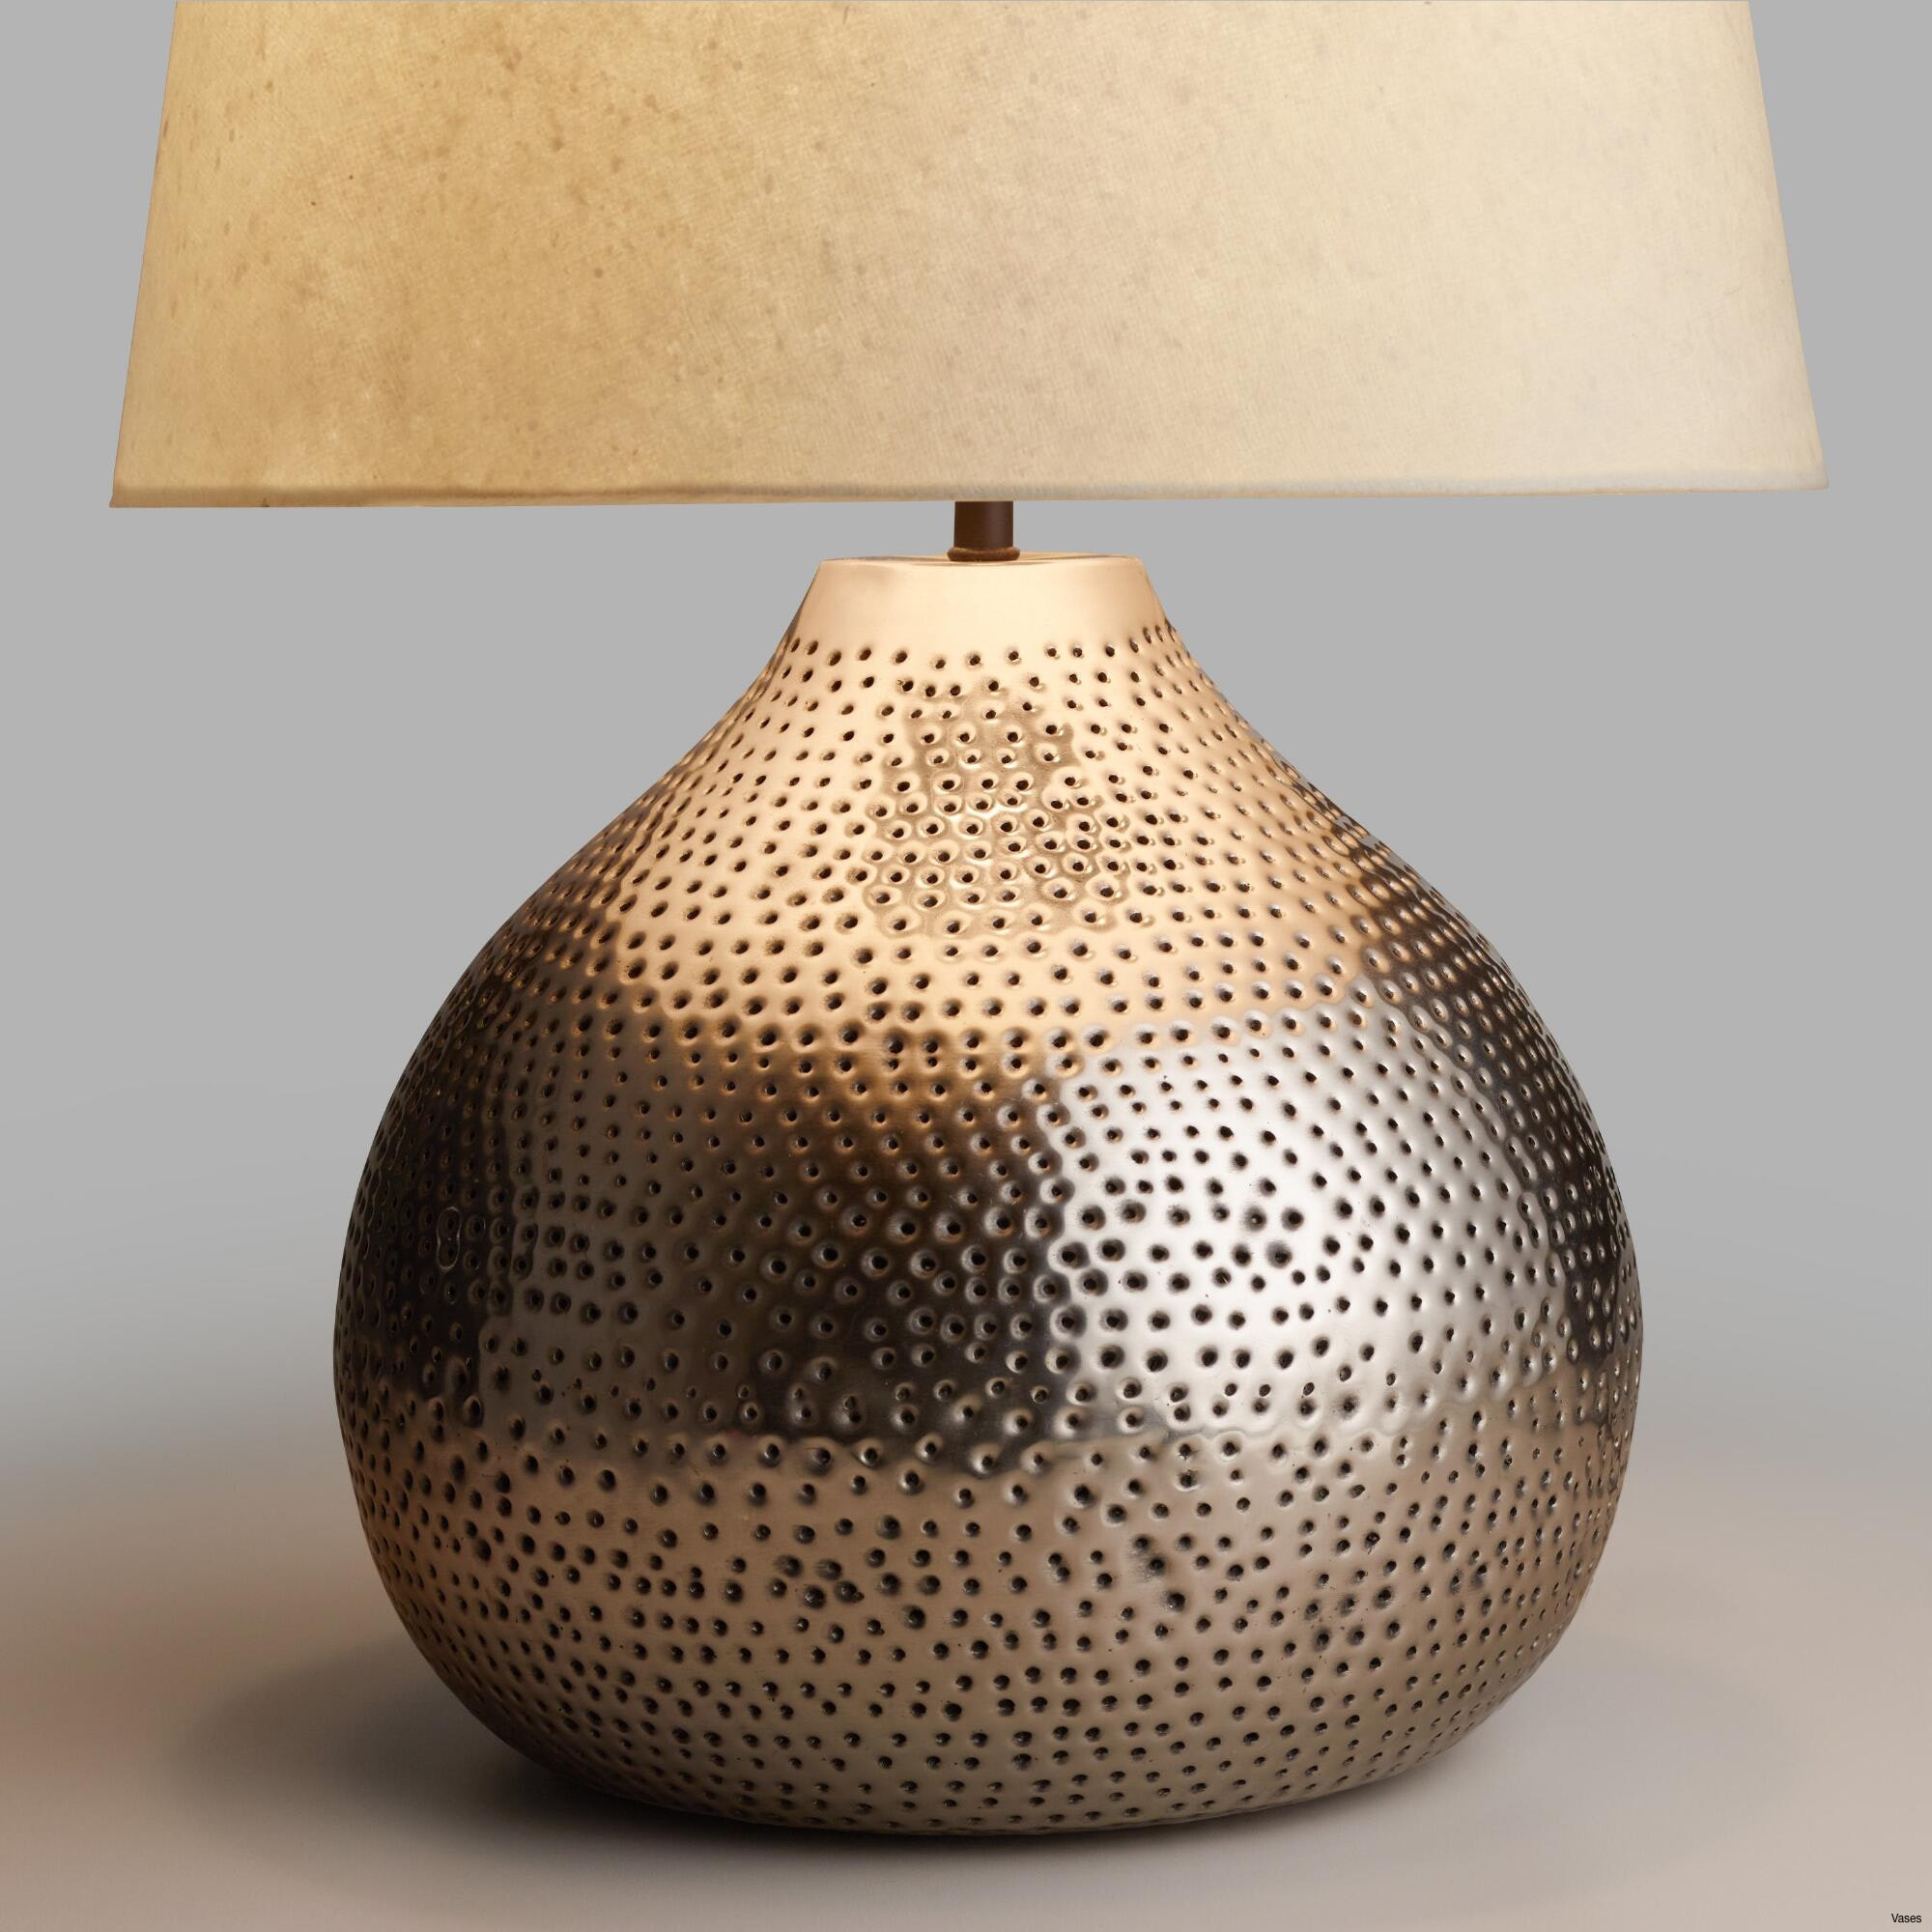 17 Stunning Grey Ceramic Vase 2021 free download grey ceramic vase of lamp shades for table lamps elegant how to make a table lamp 10h in lamp shades for table lamps elegant how to make a table lamp 10h vases from vase